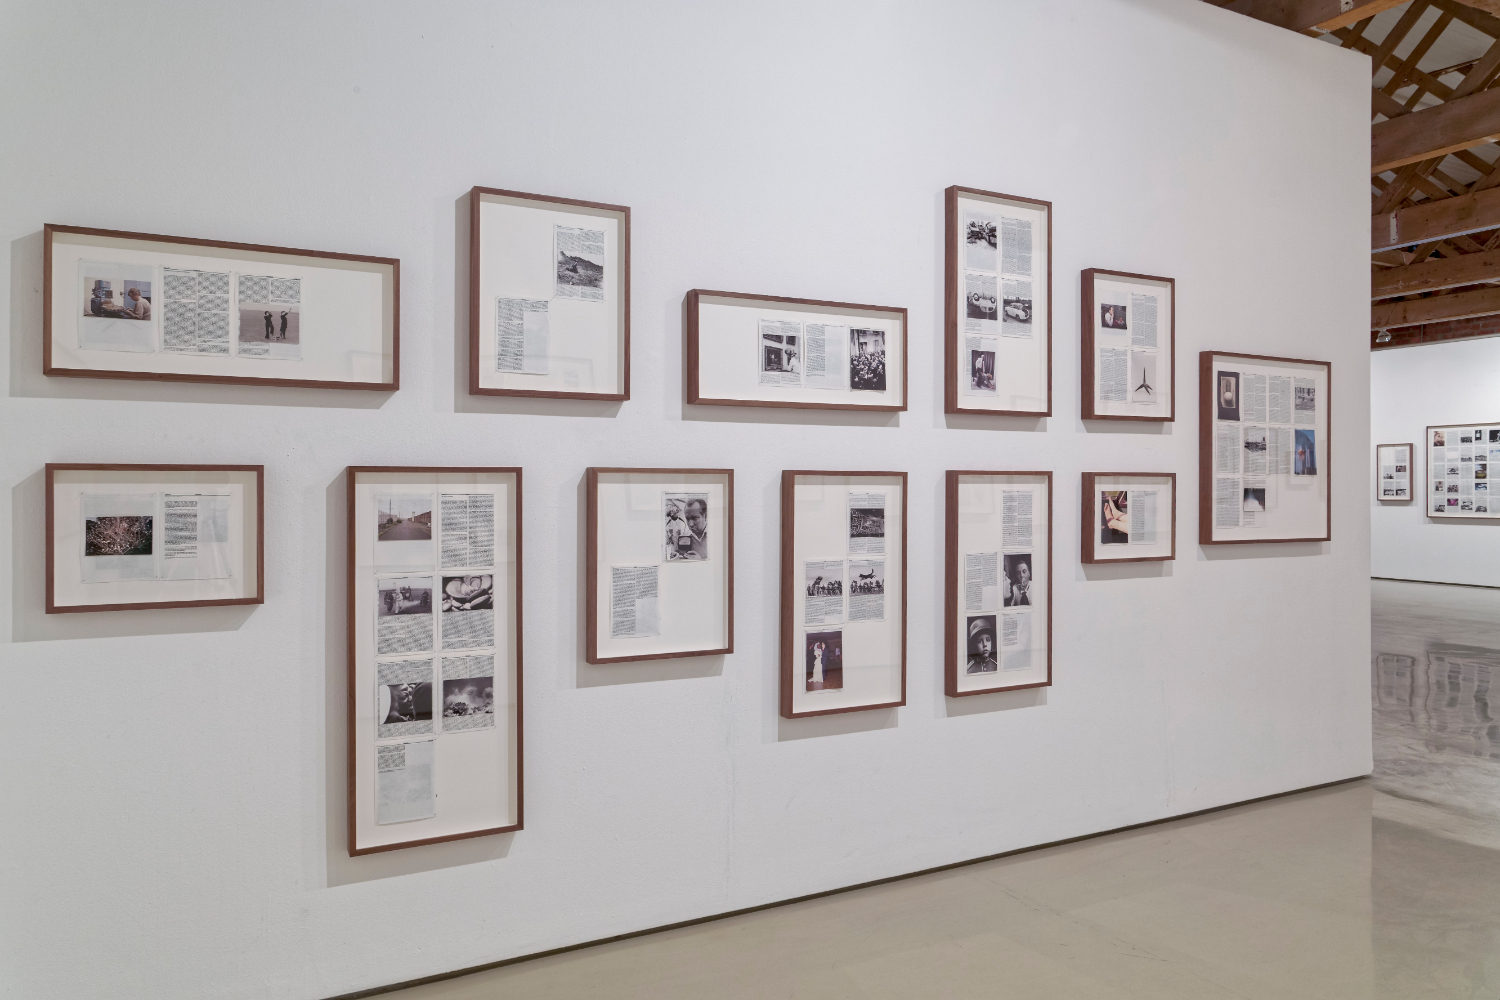 Divine Violence, Goodman Gallery, Cape Town, Installation View, 2015, Image © Goodman Gallery